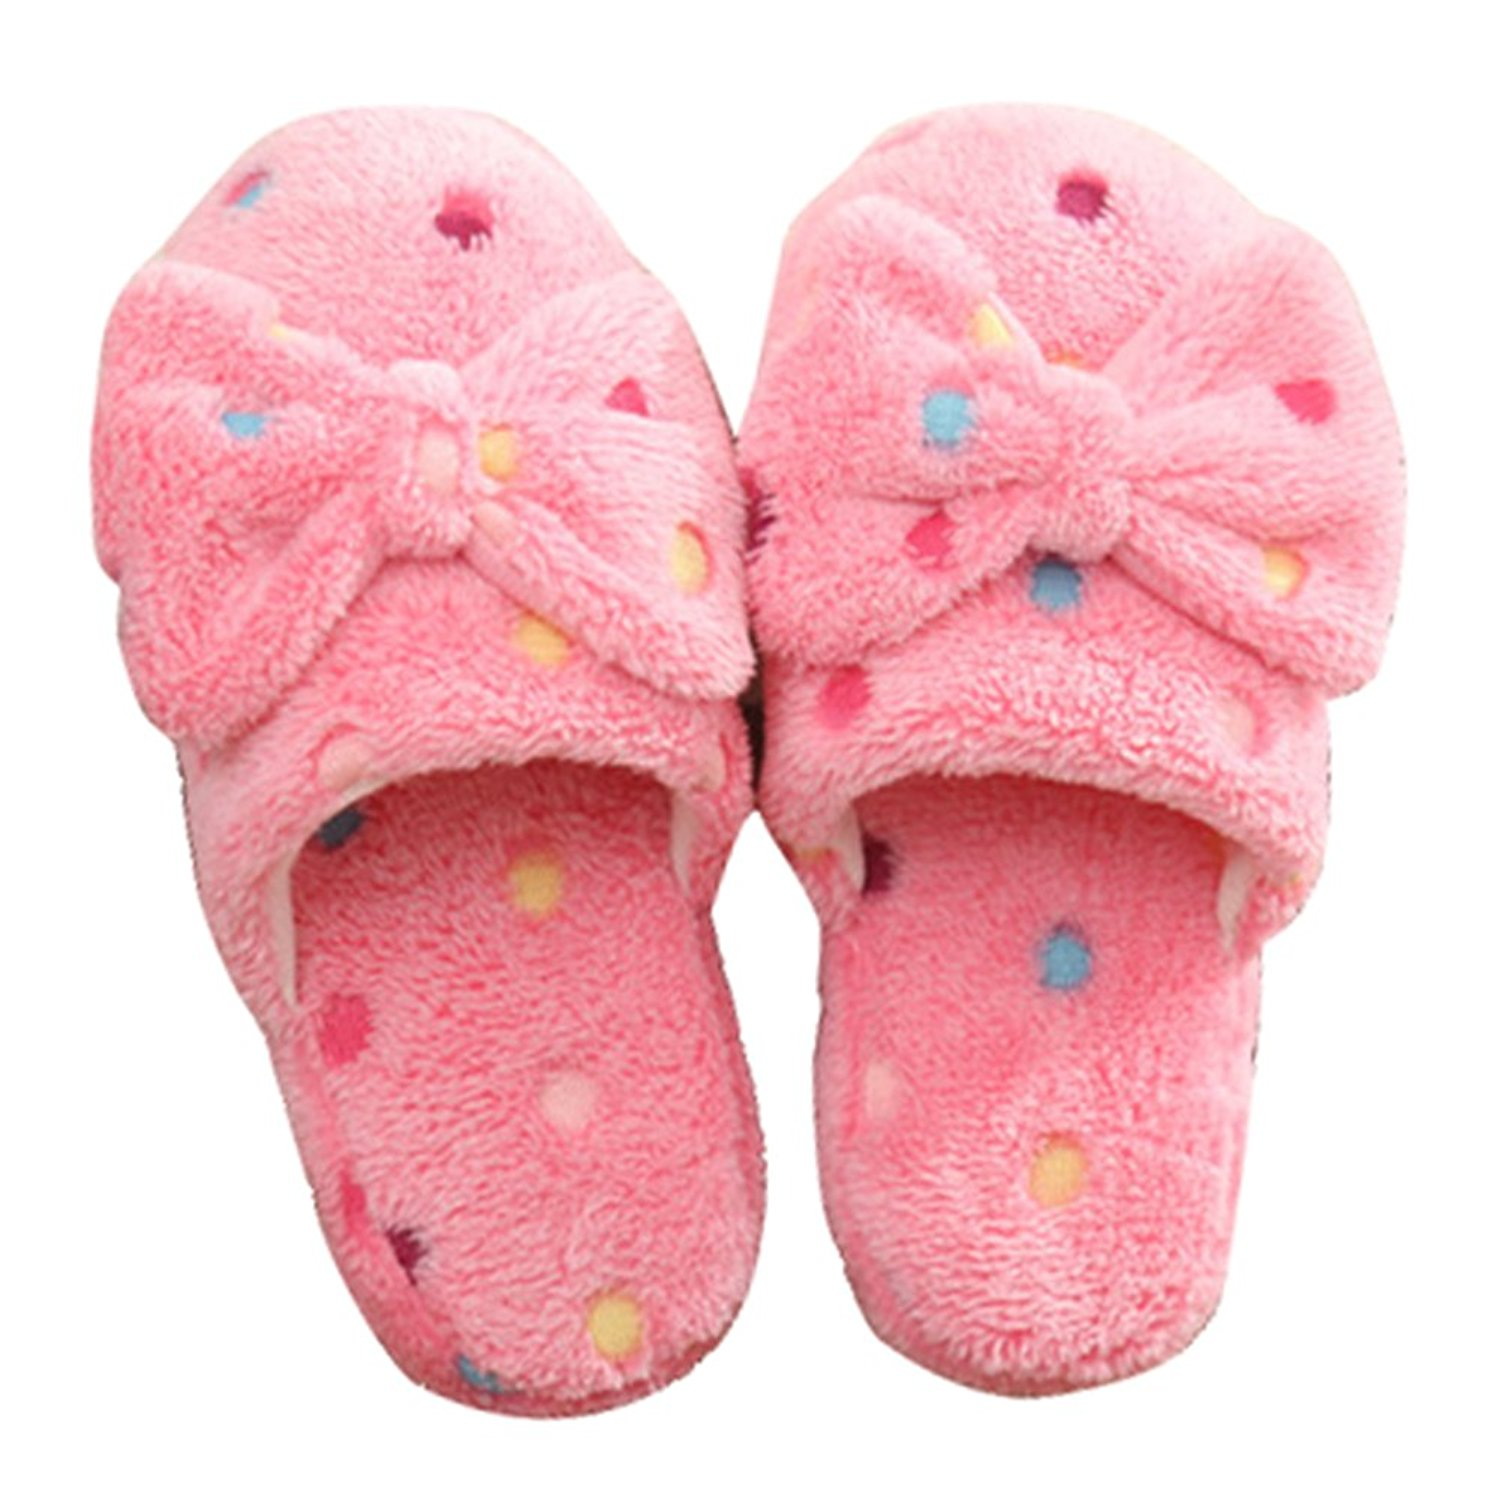 Gracefulvara Women Girls Anti-Slip Cute Dot Bowknot Slippers,Coral Velvet Indoor Warm Shoes